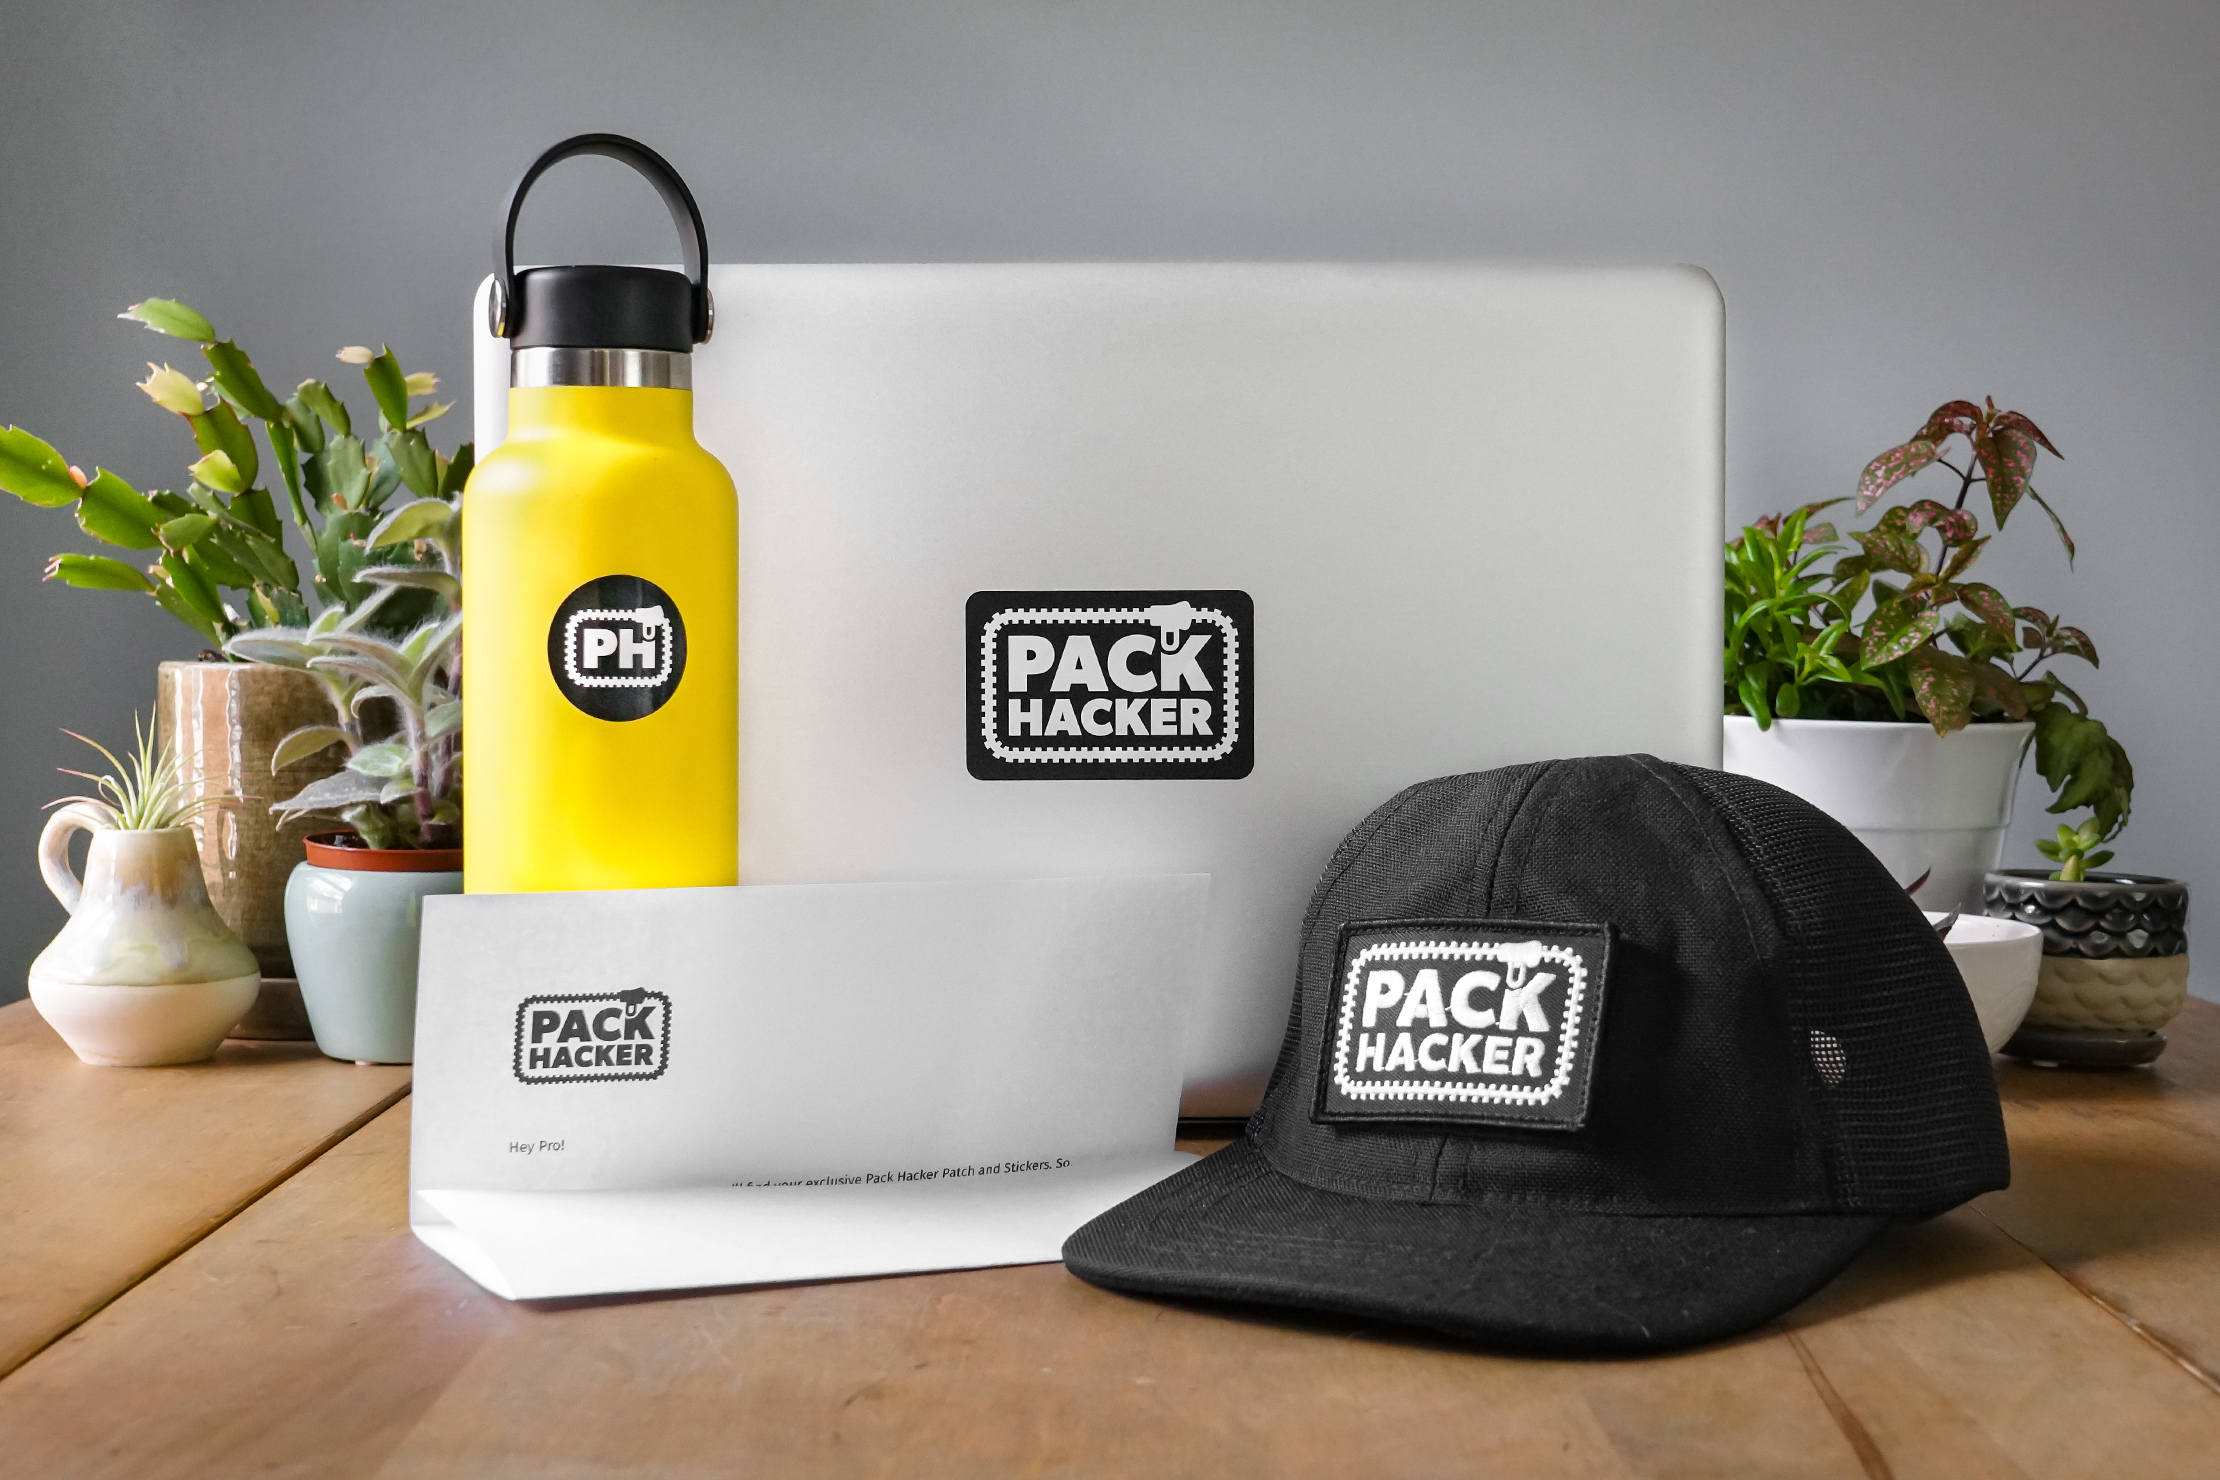 Pack Hacker Pro Welcome Kit Usage